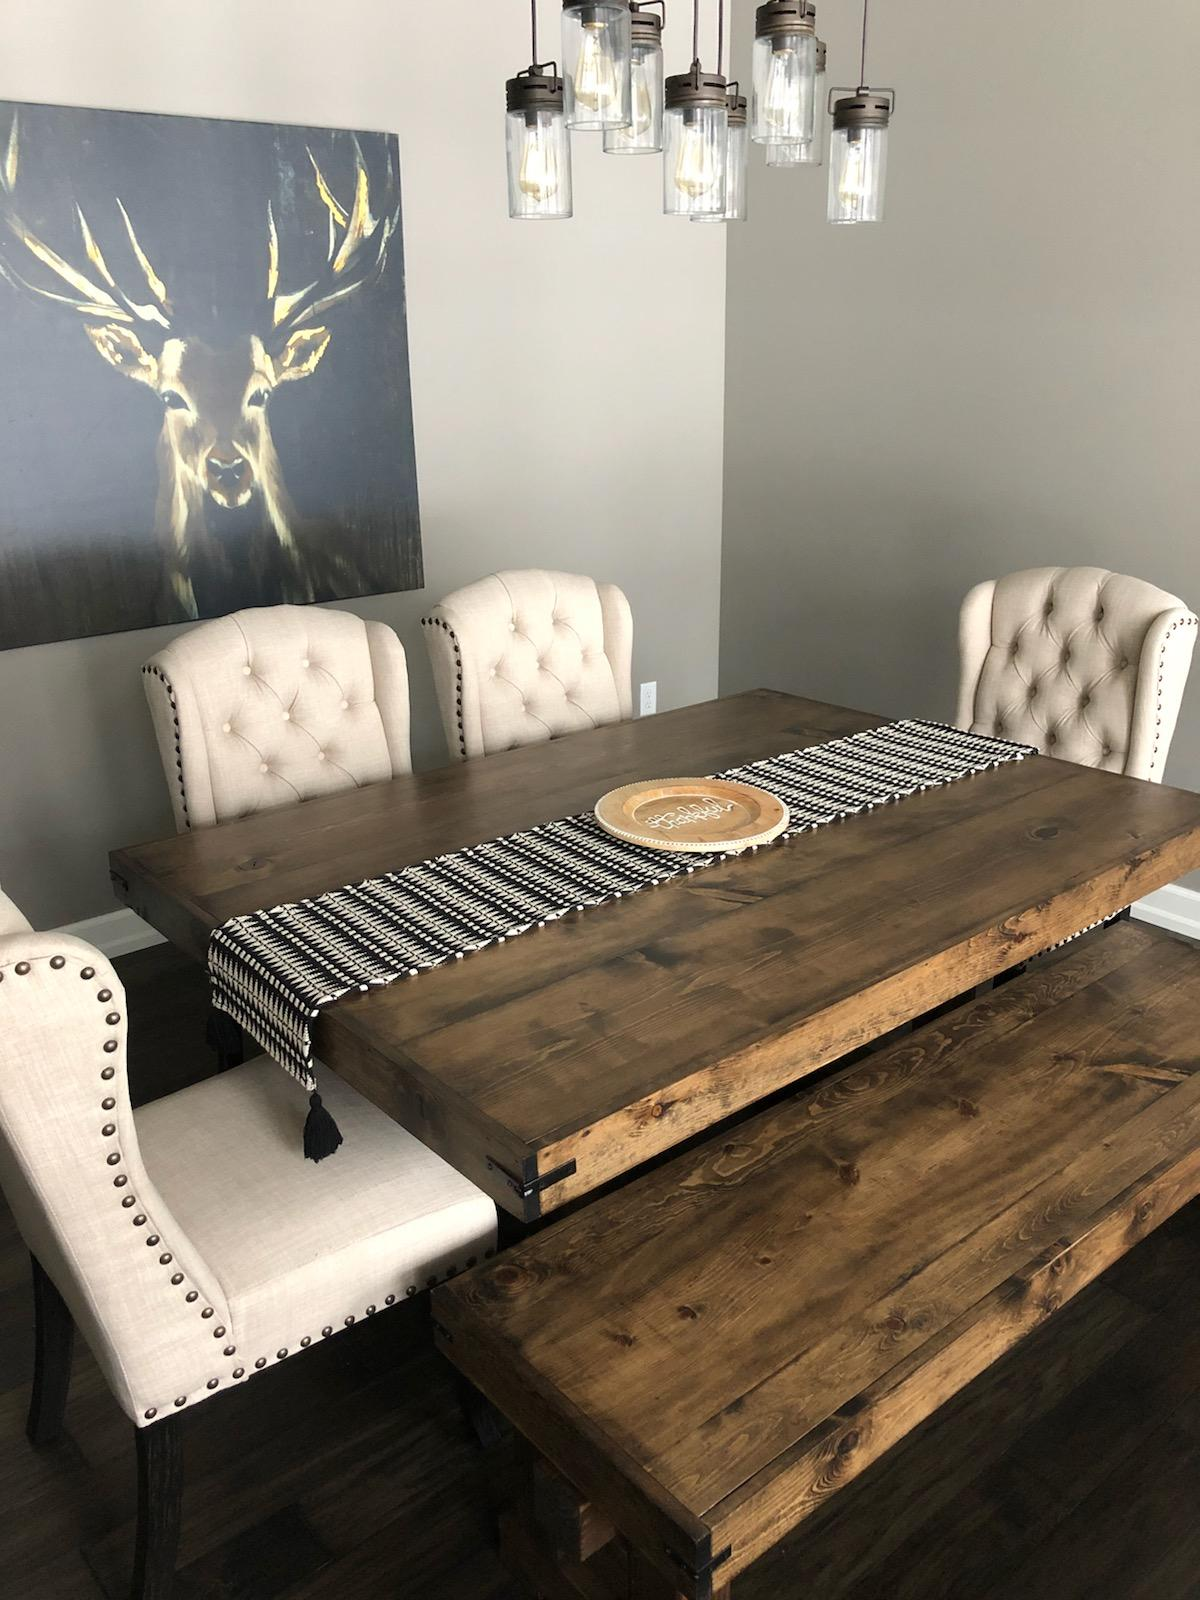 Viking Style Table & Bench